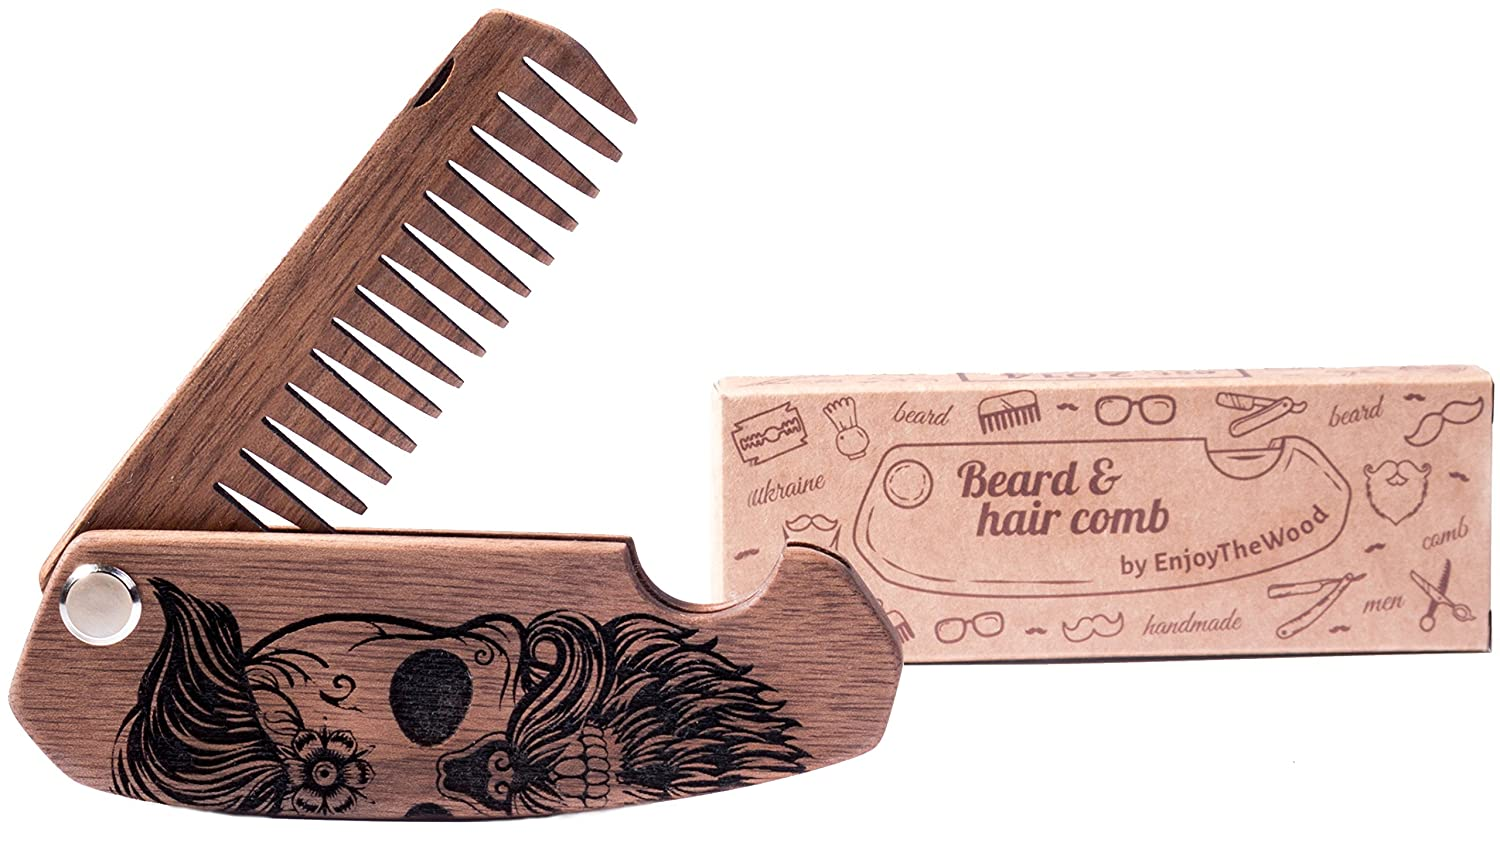 Beard Comb Wood Folding Walnut Skull By Enjoy The Wood - Moustache Comb - Wooden Folding Comb For Men With Sugar Skull Grooming Kit Pocket Size Husband Gift Father Dad Boyfriend Friend